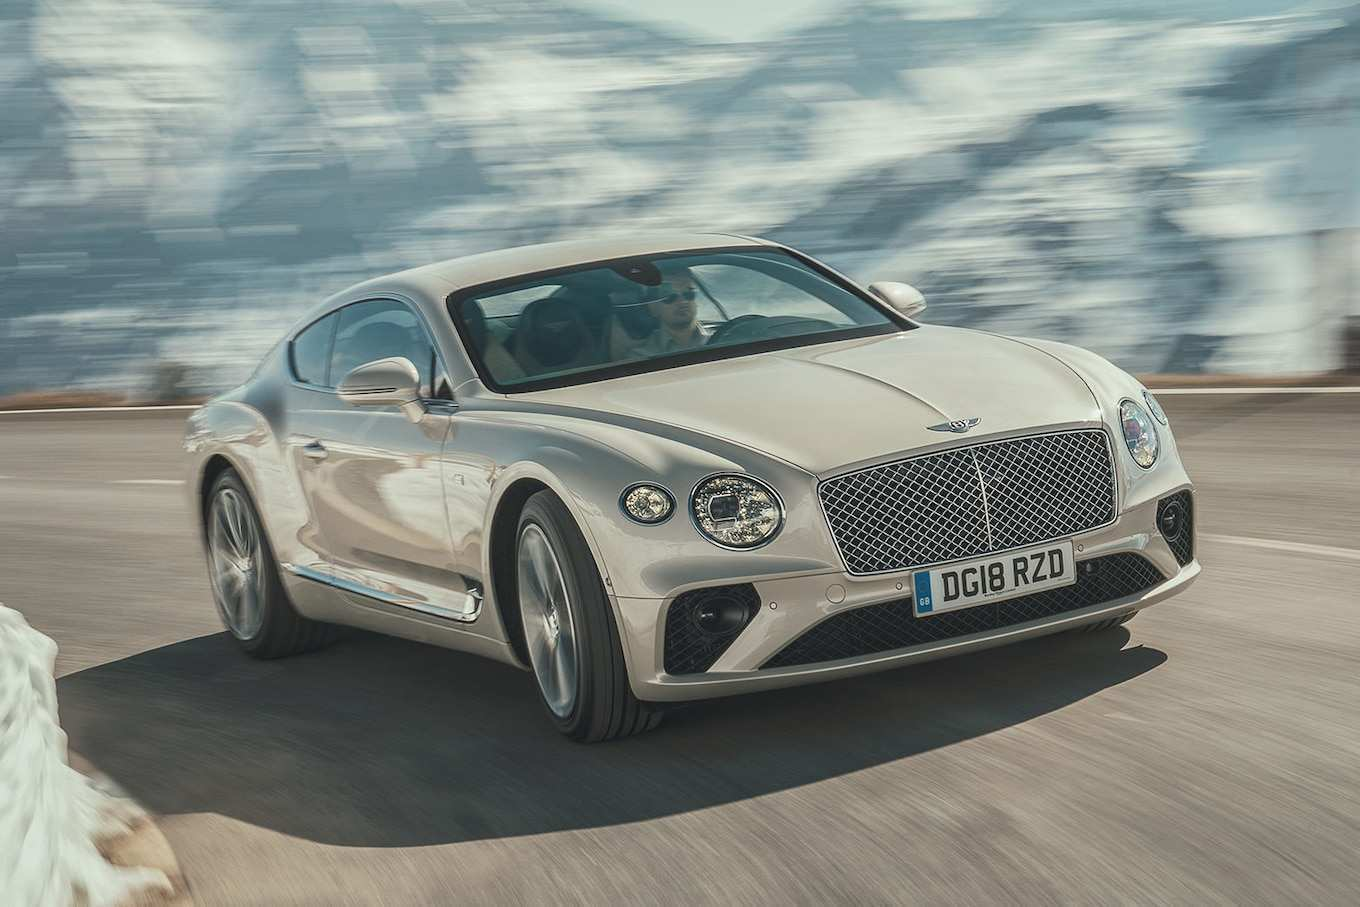 50 All New 2019 Bentley Continental Gt Weight Research New for 2019 Bentley Continental Gt Weight